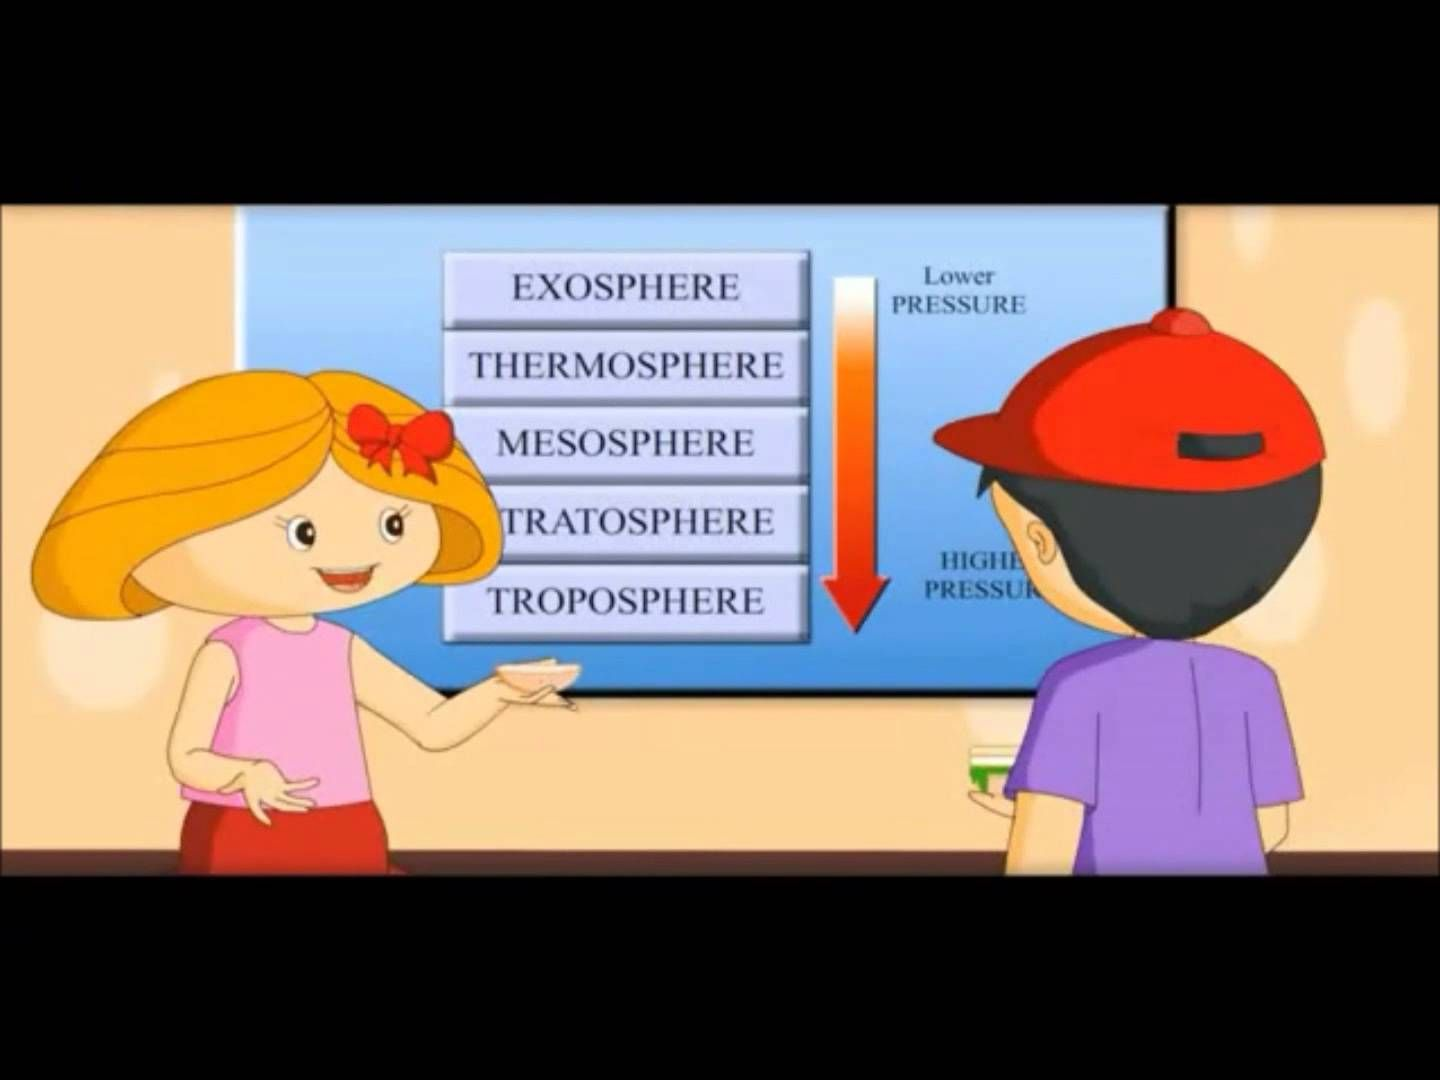 Earth atmosphere air layers video for kids via youtube earth atmosphere air layers video for kids via youtube gamestrikefo Images